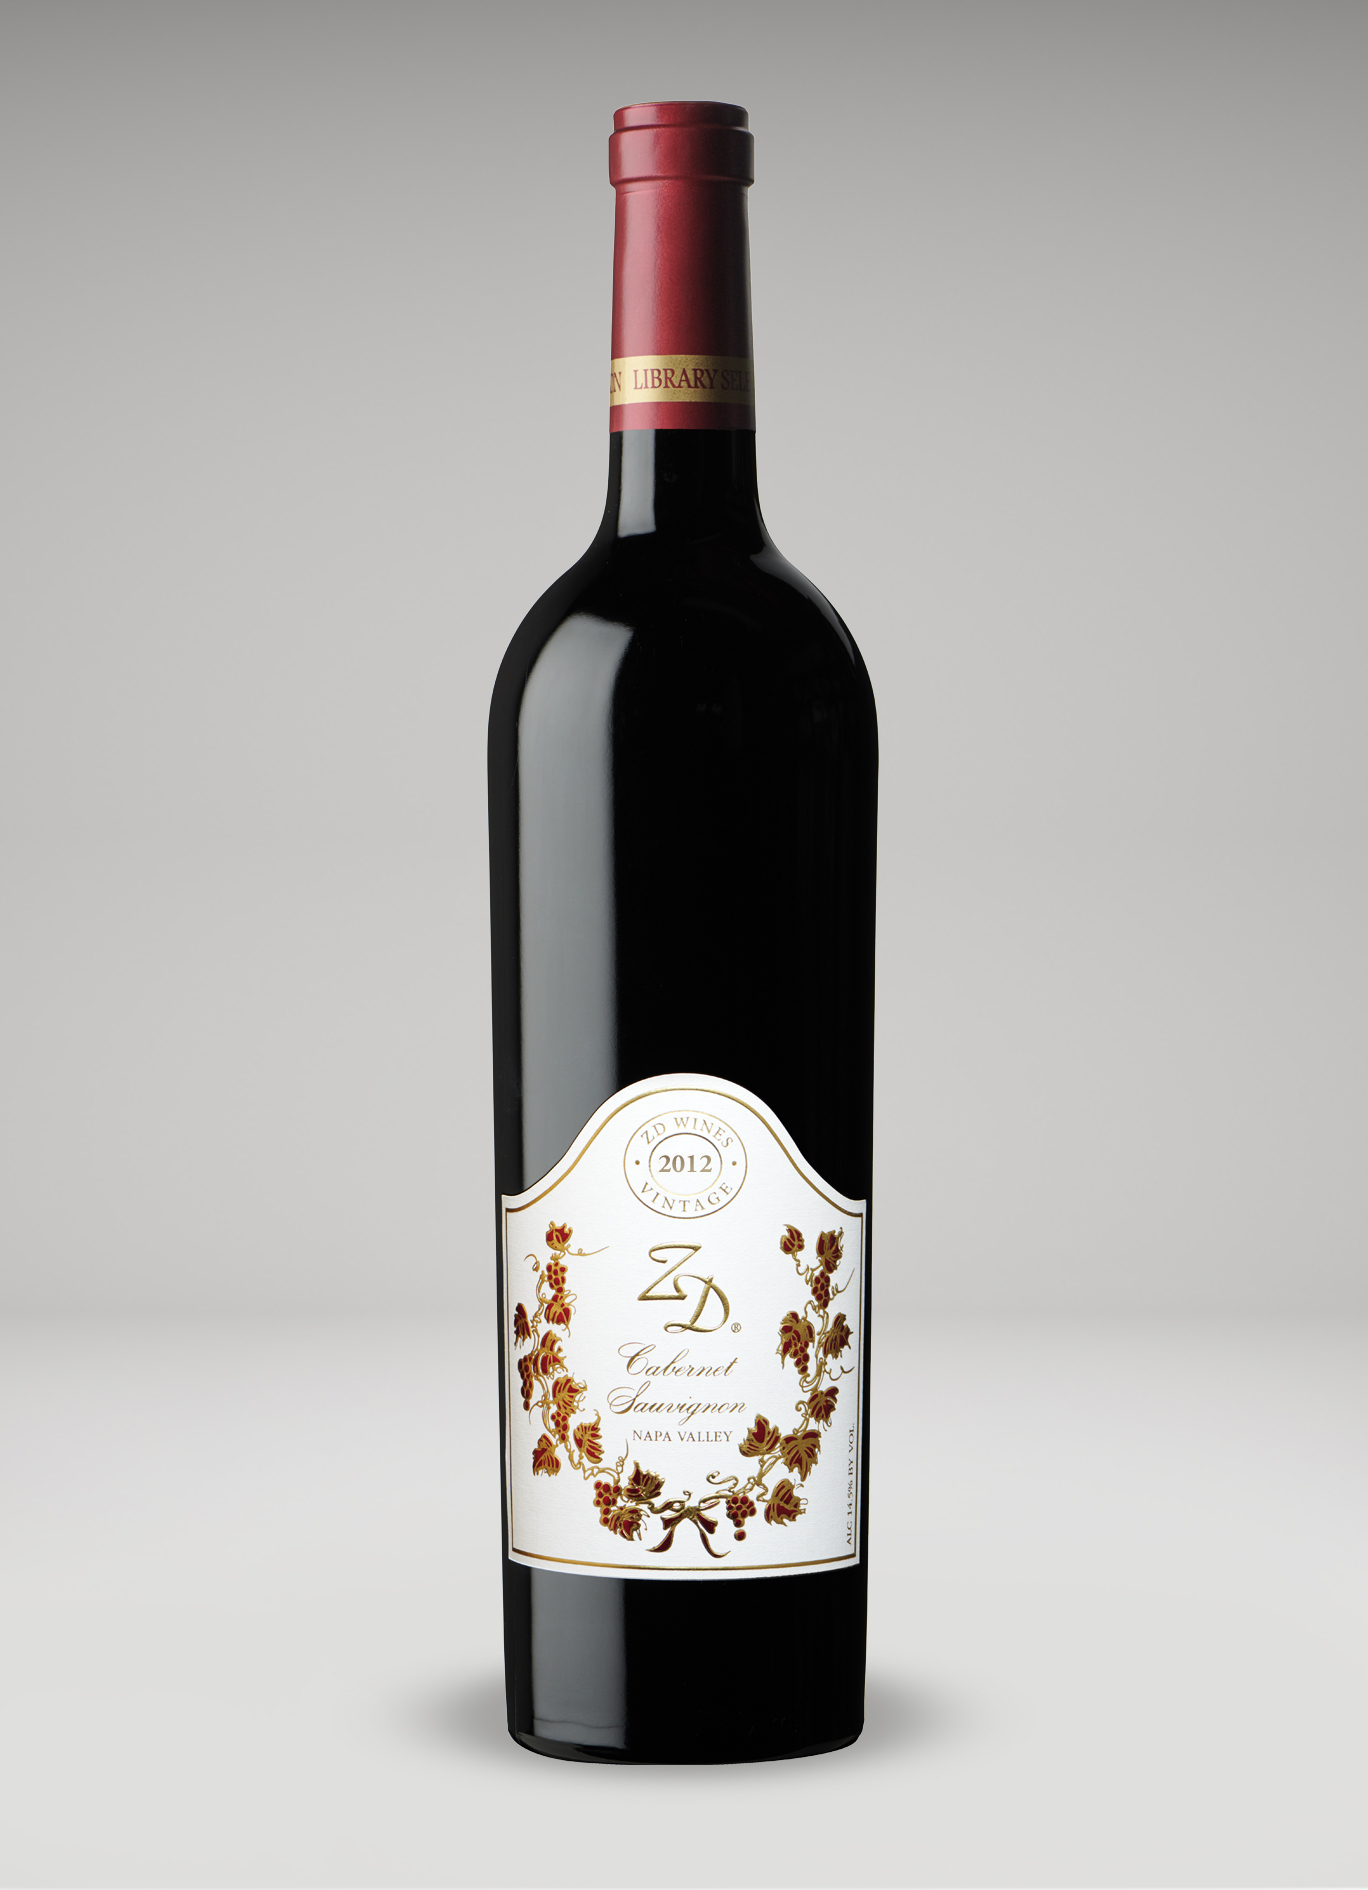 A bottle of 2012 ZD Cabernet Sauvignon, Napa Valley